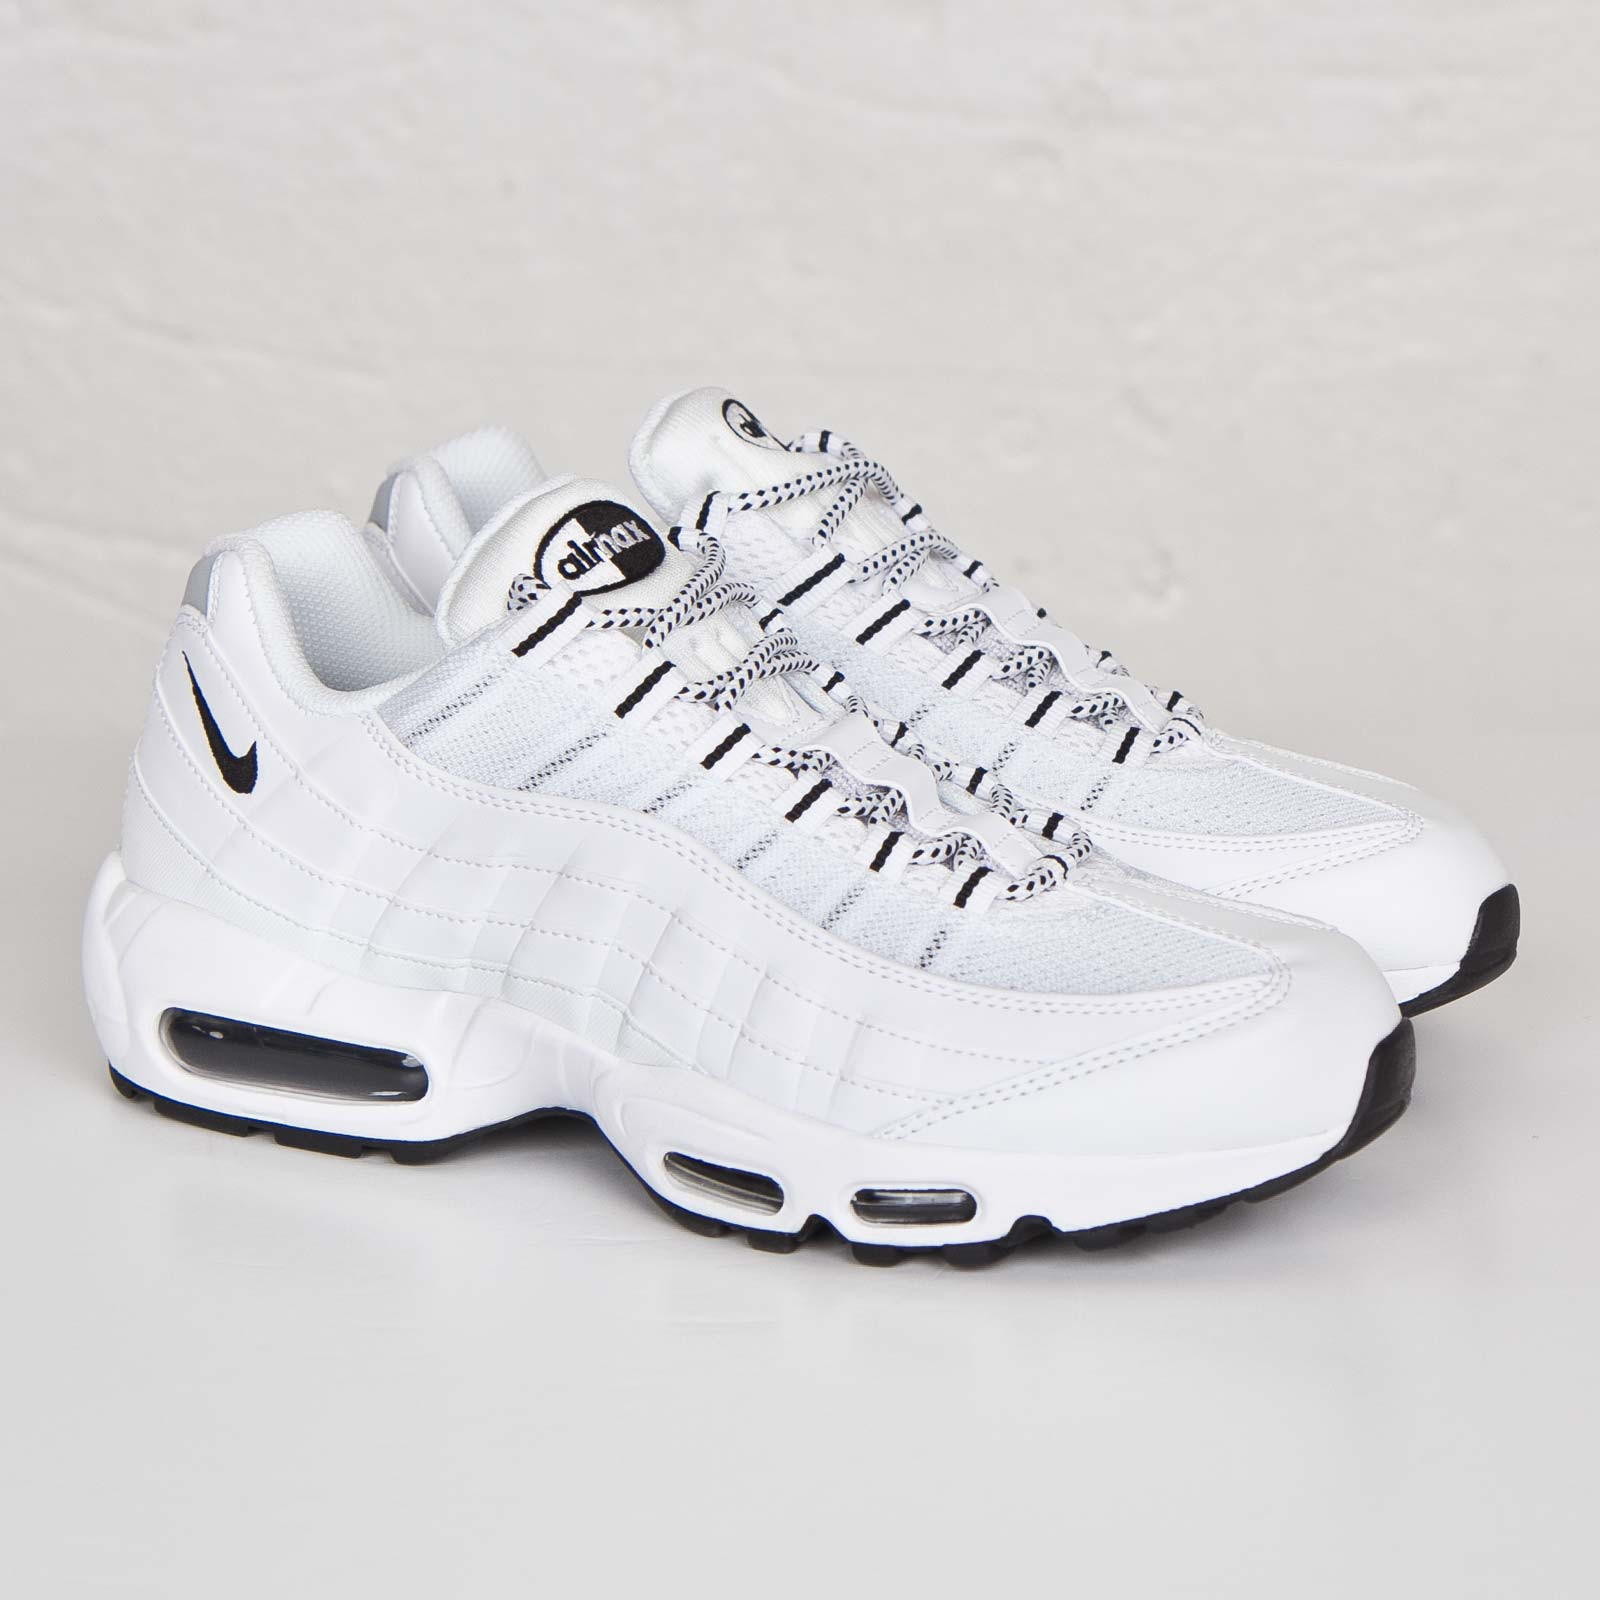 new style 62f40 aa7f0 Nike Air Max 95 - 609048-109 - Sneakersnstuff   sneakers ...